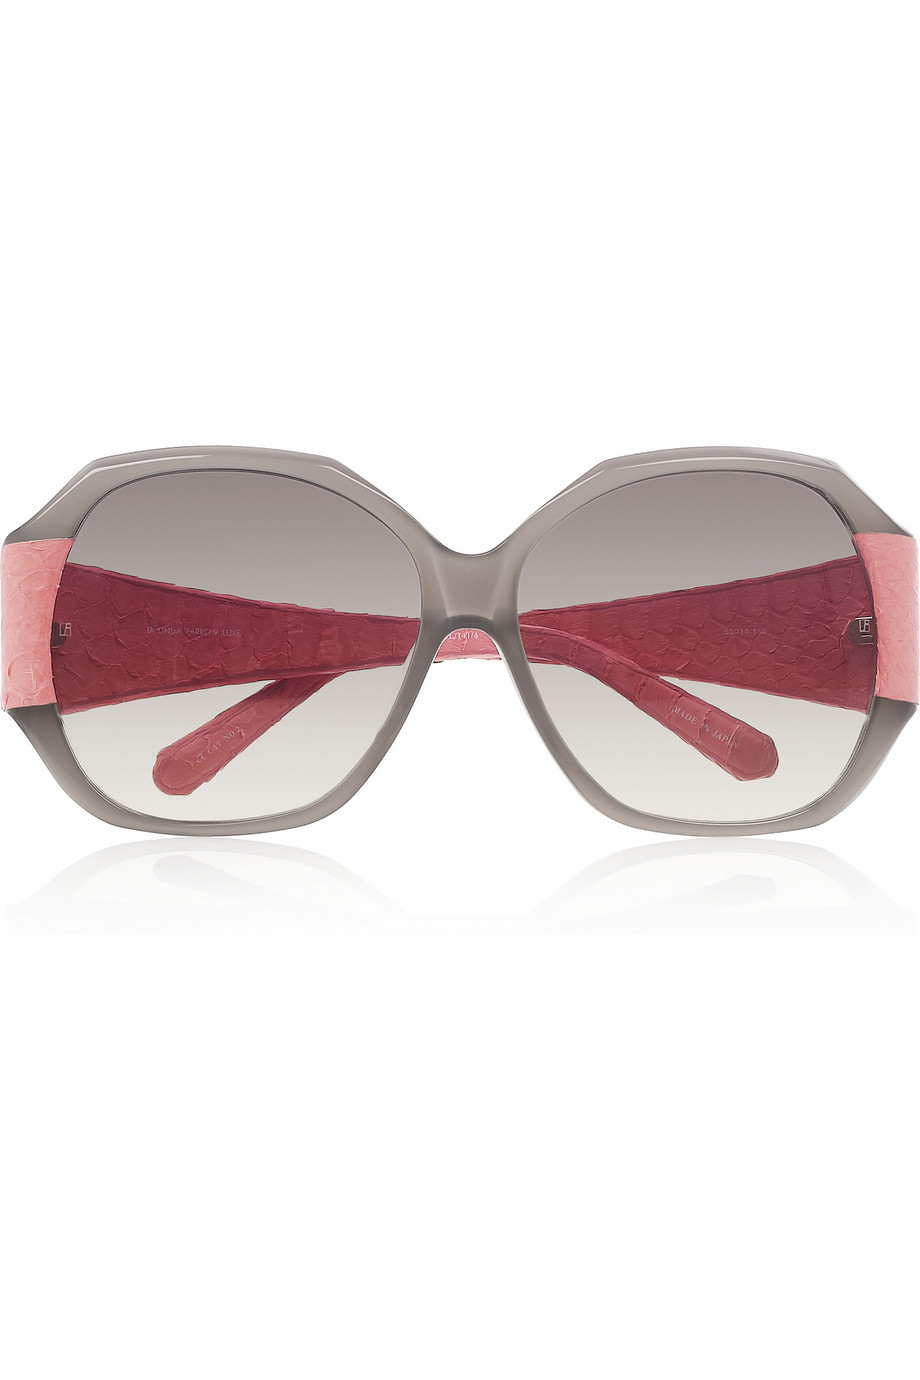 Geometric Sunglasses  linda farrow luxe geometric round frame acetate and snake effect